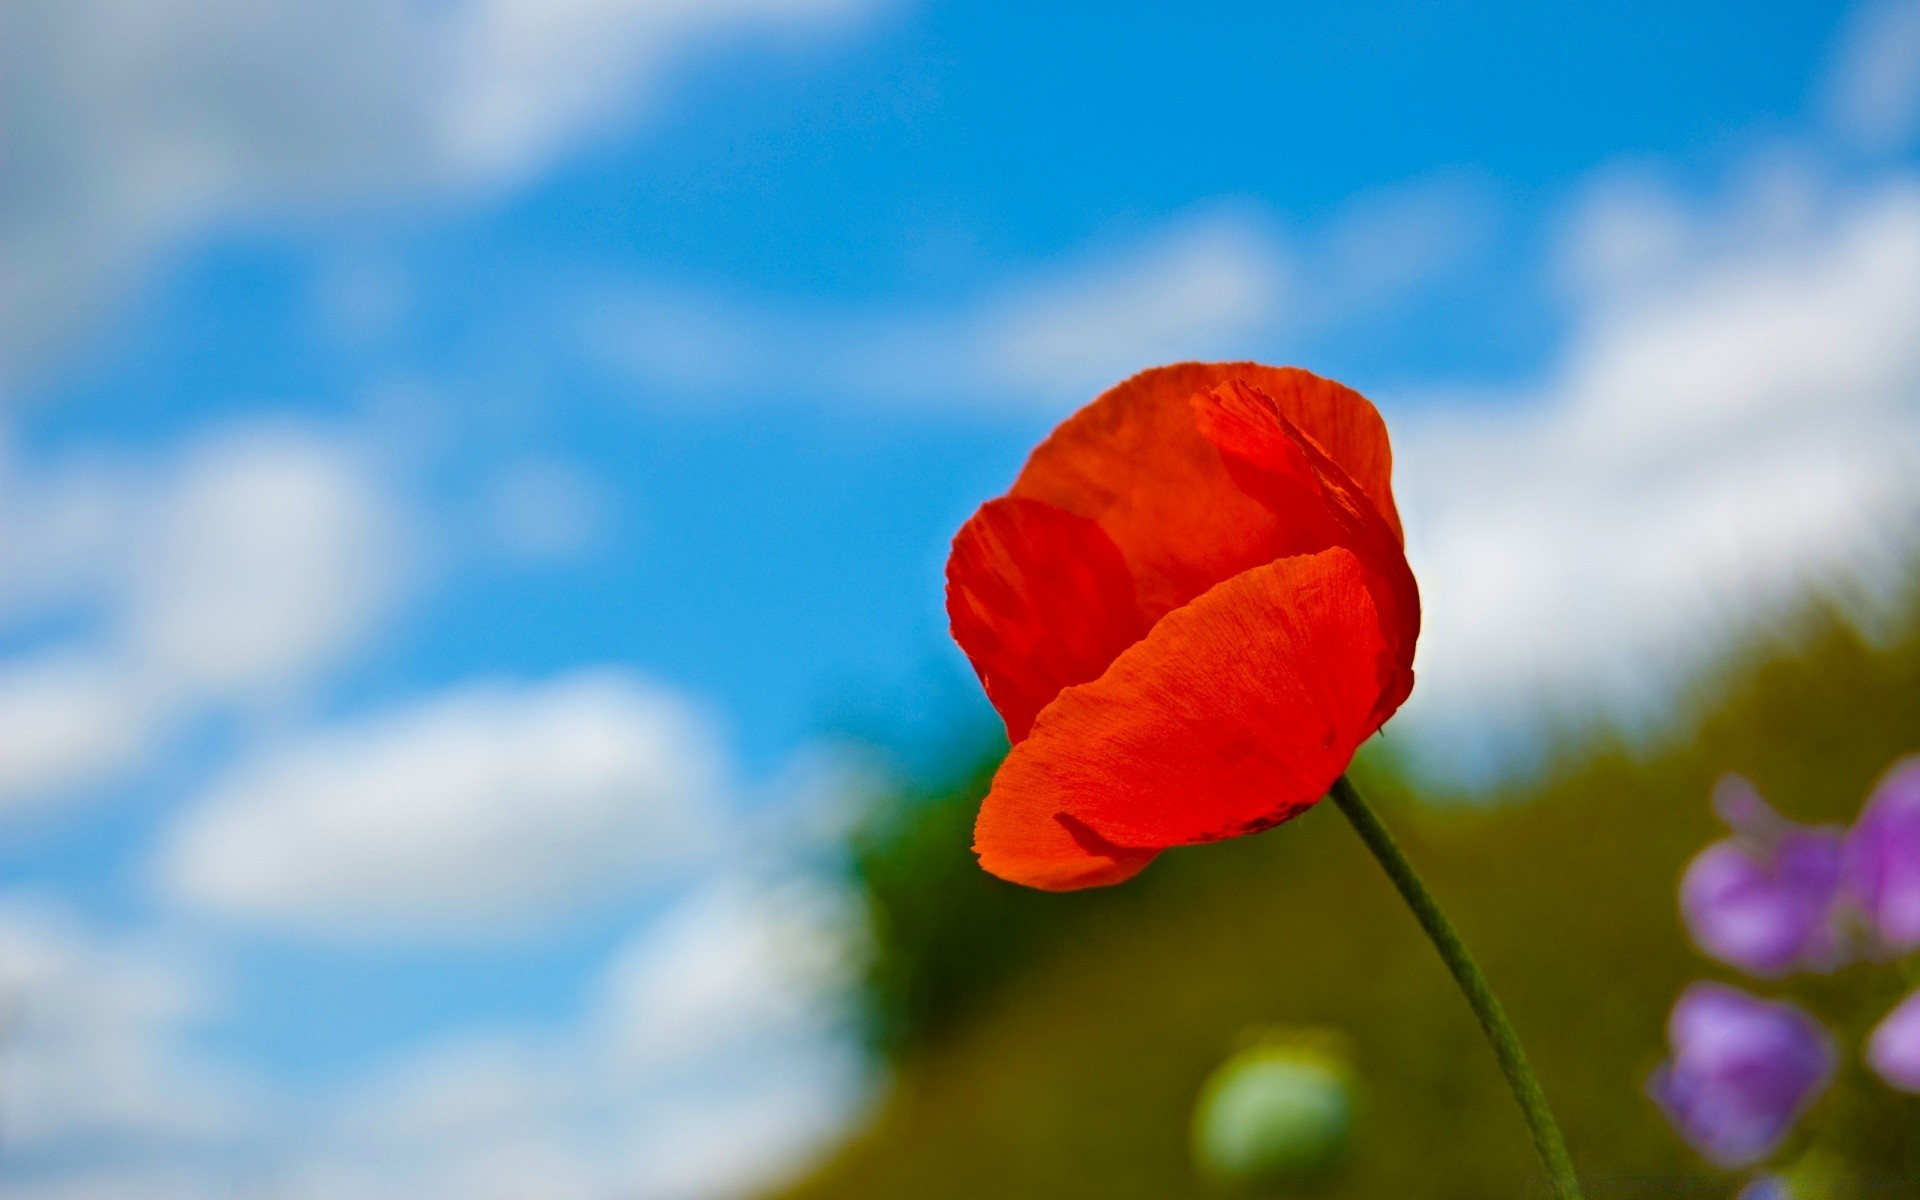 A Lone Red Poppy. Android wallpapers for free.